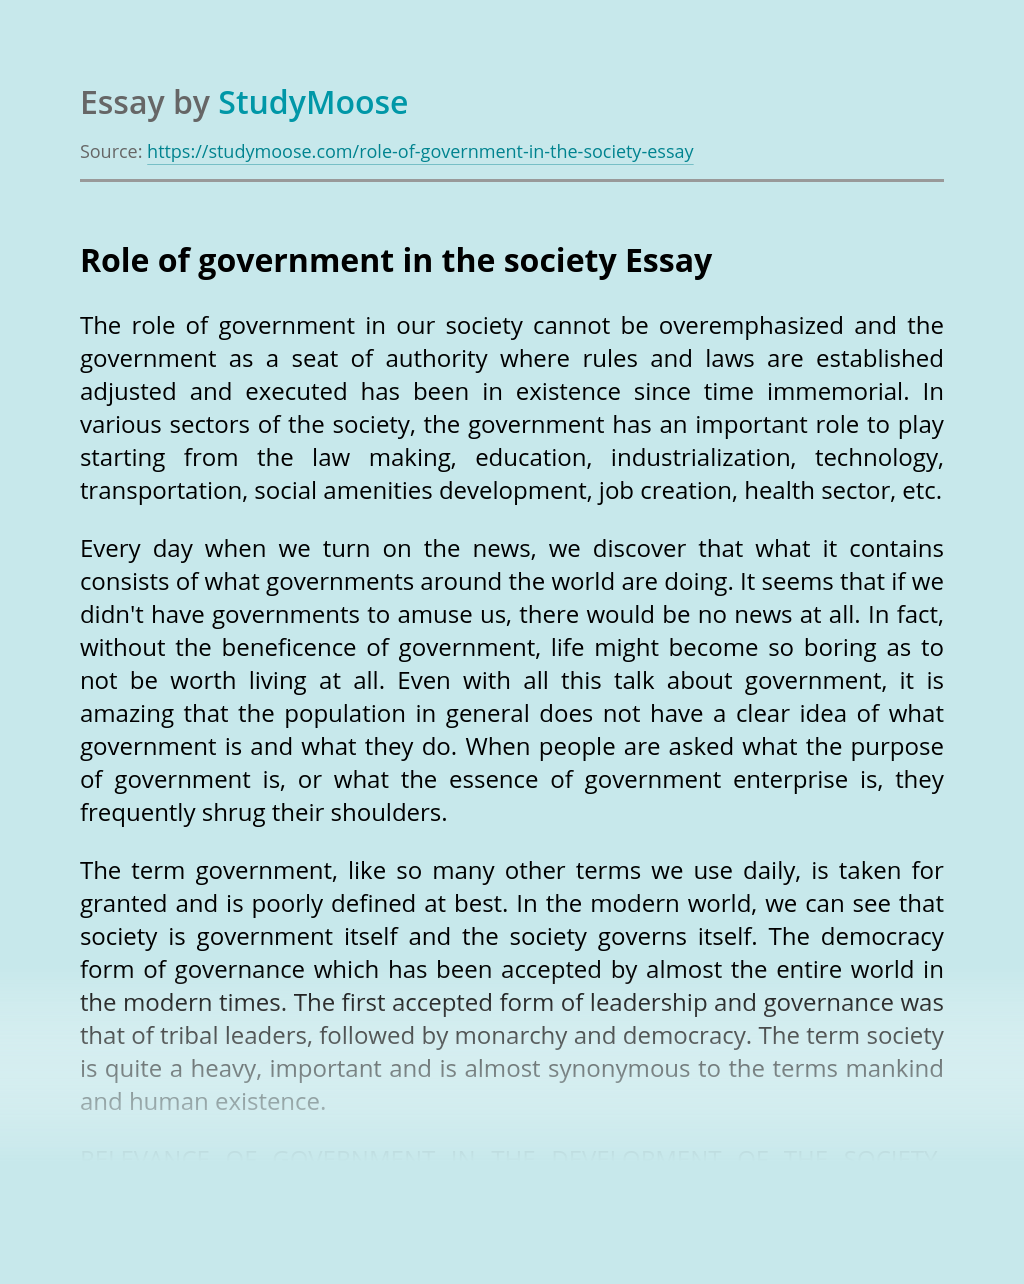 Role of government in the society